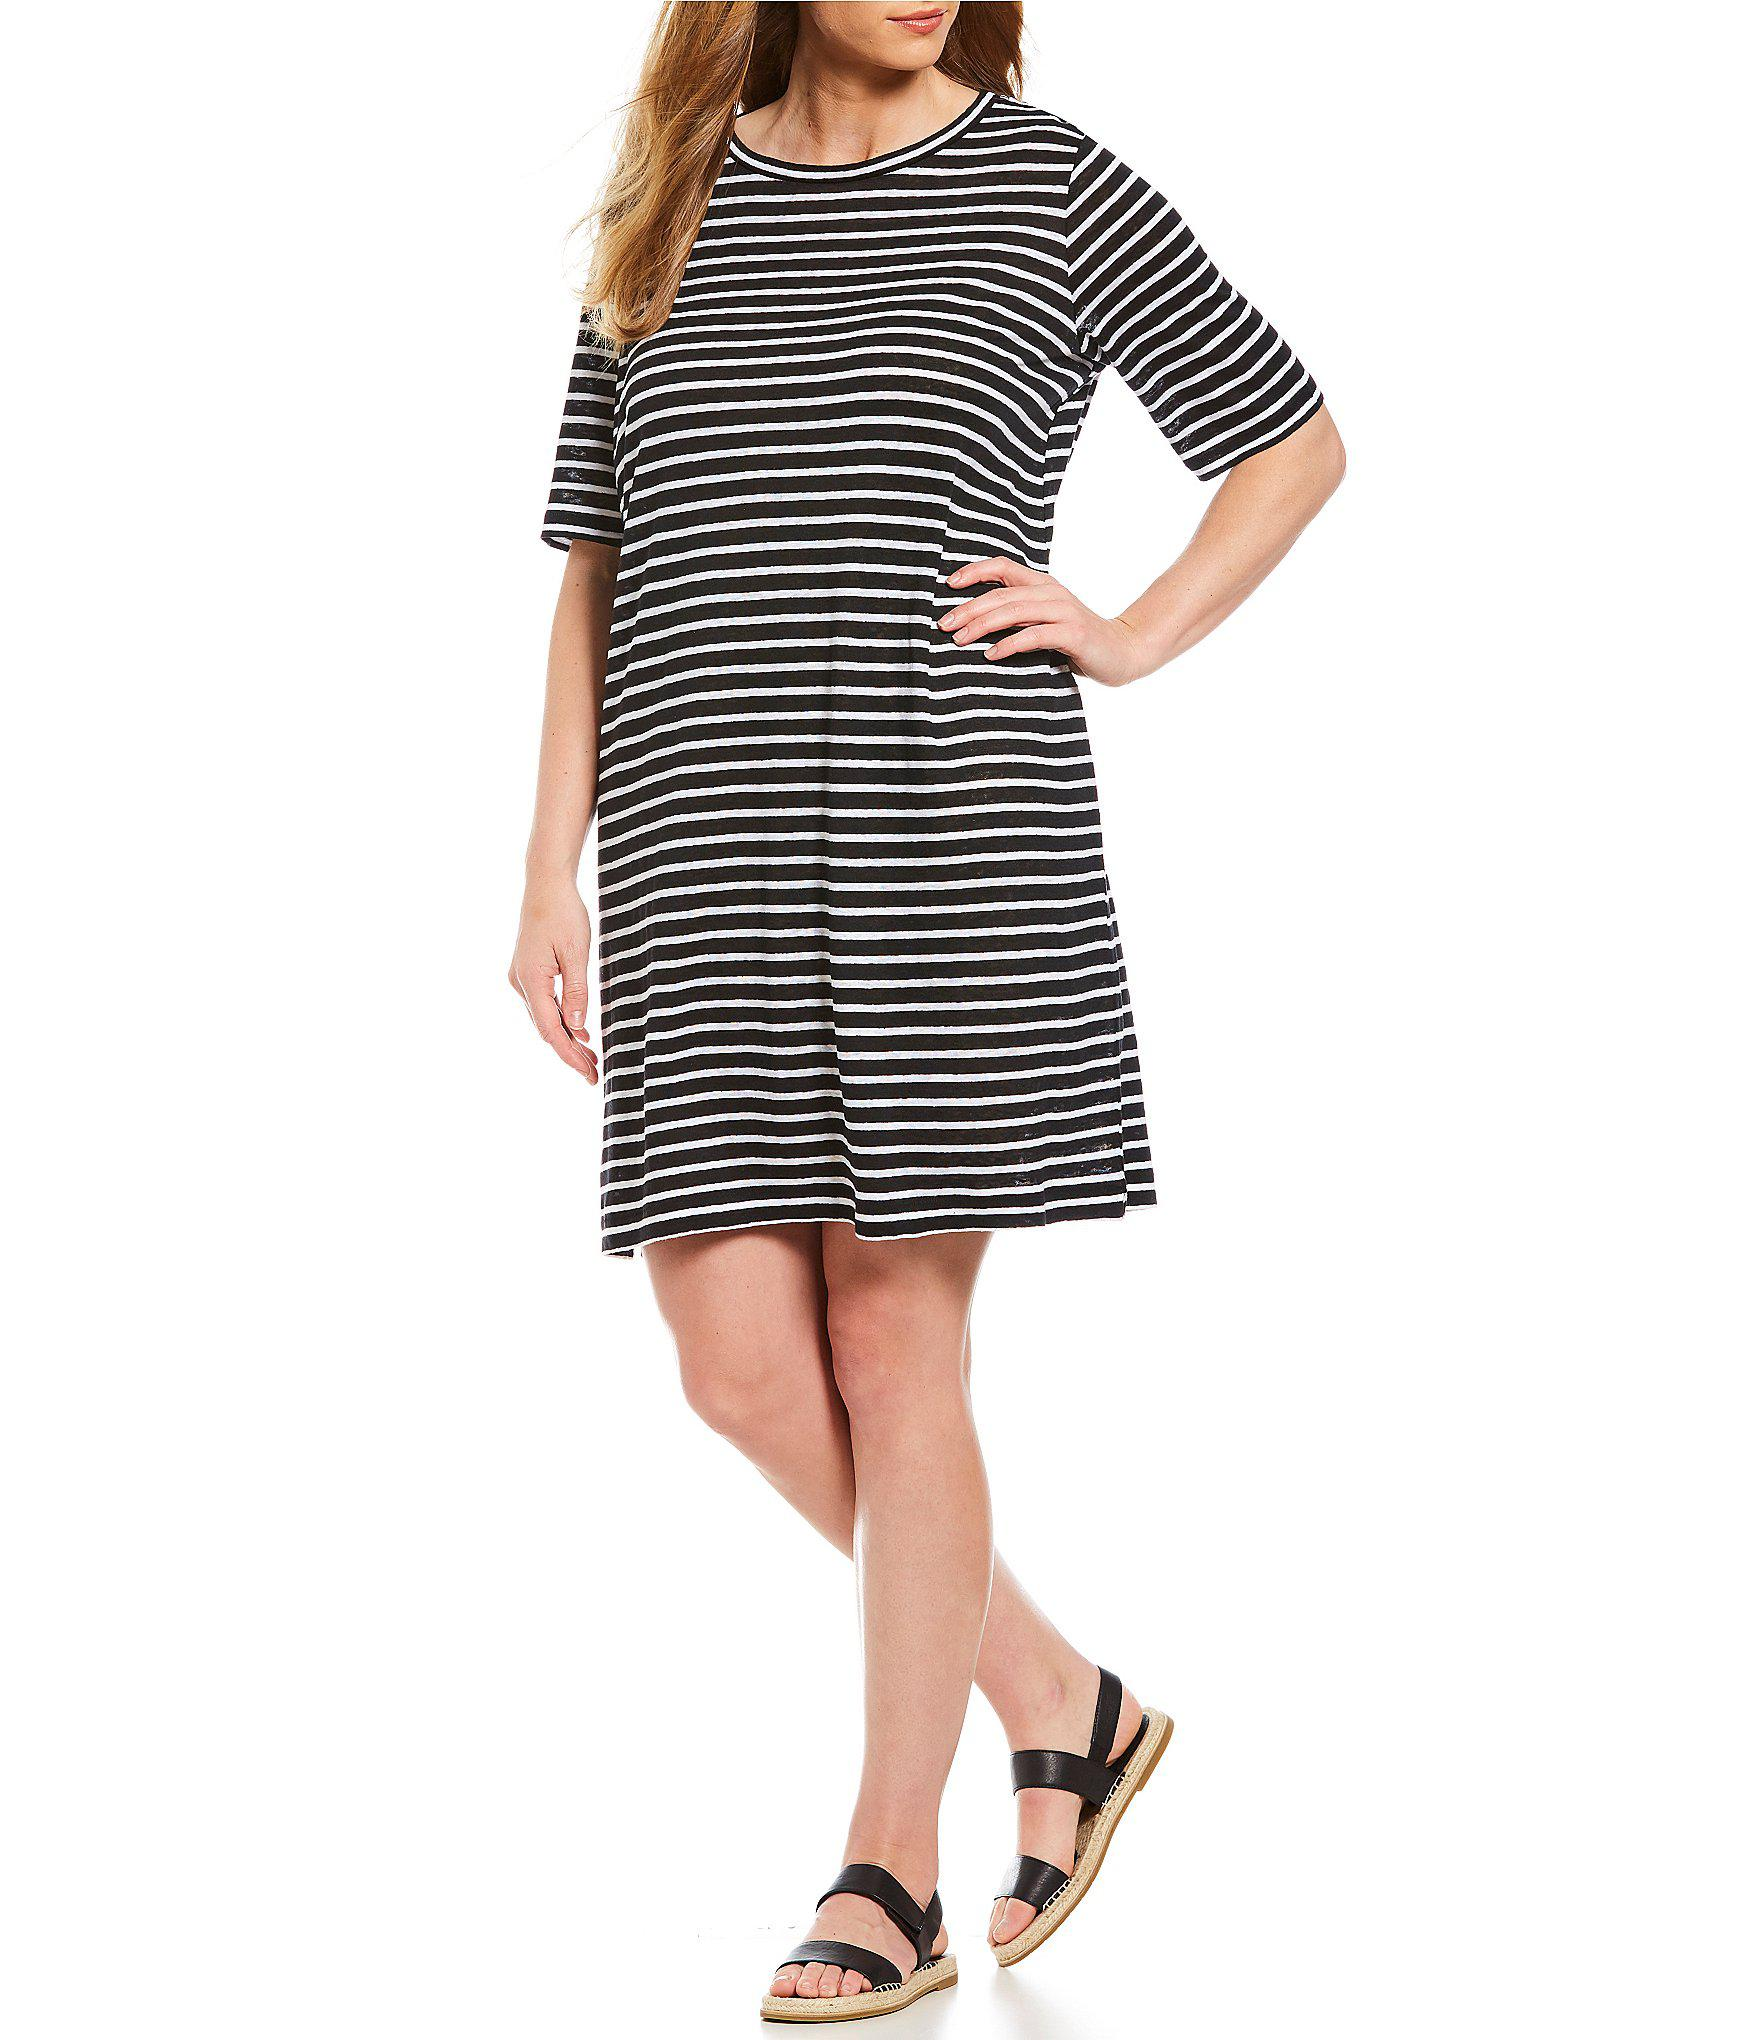 e2d61182315 Lyst - Eileen Fisher Plus Size Round Neck Elbow Sleeve Dress in Black